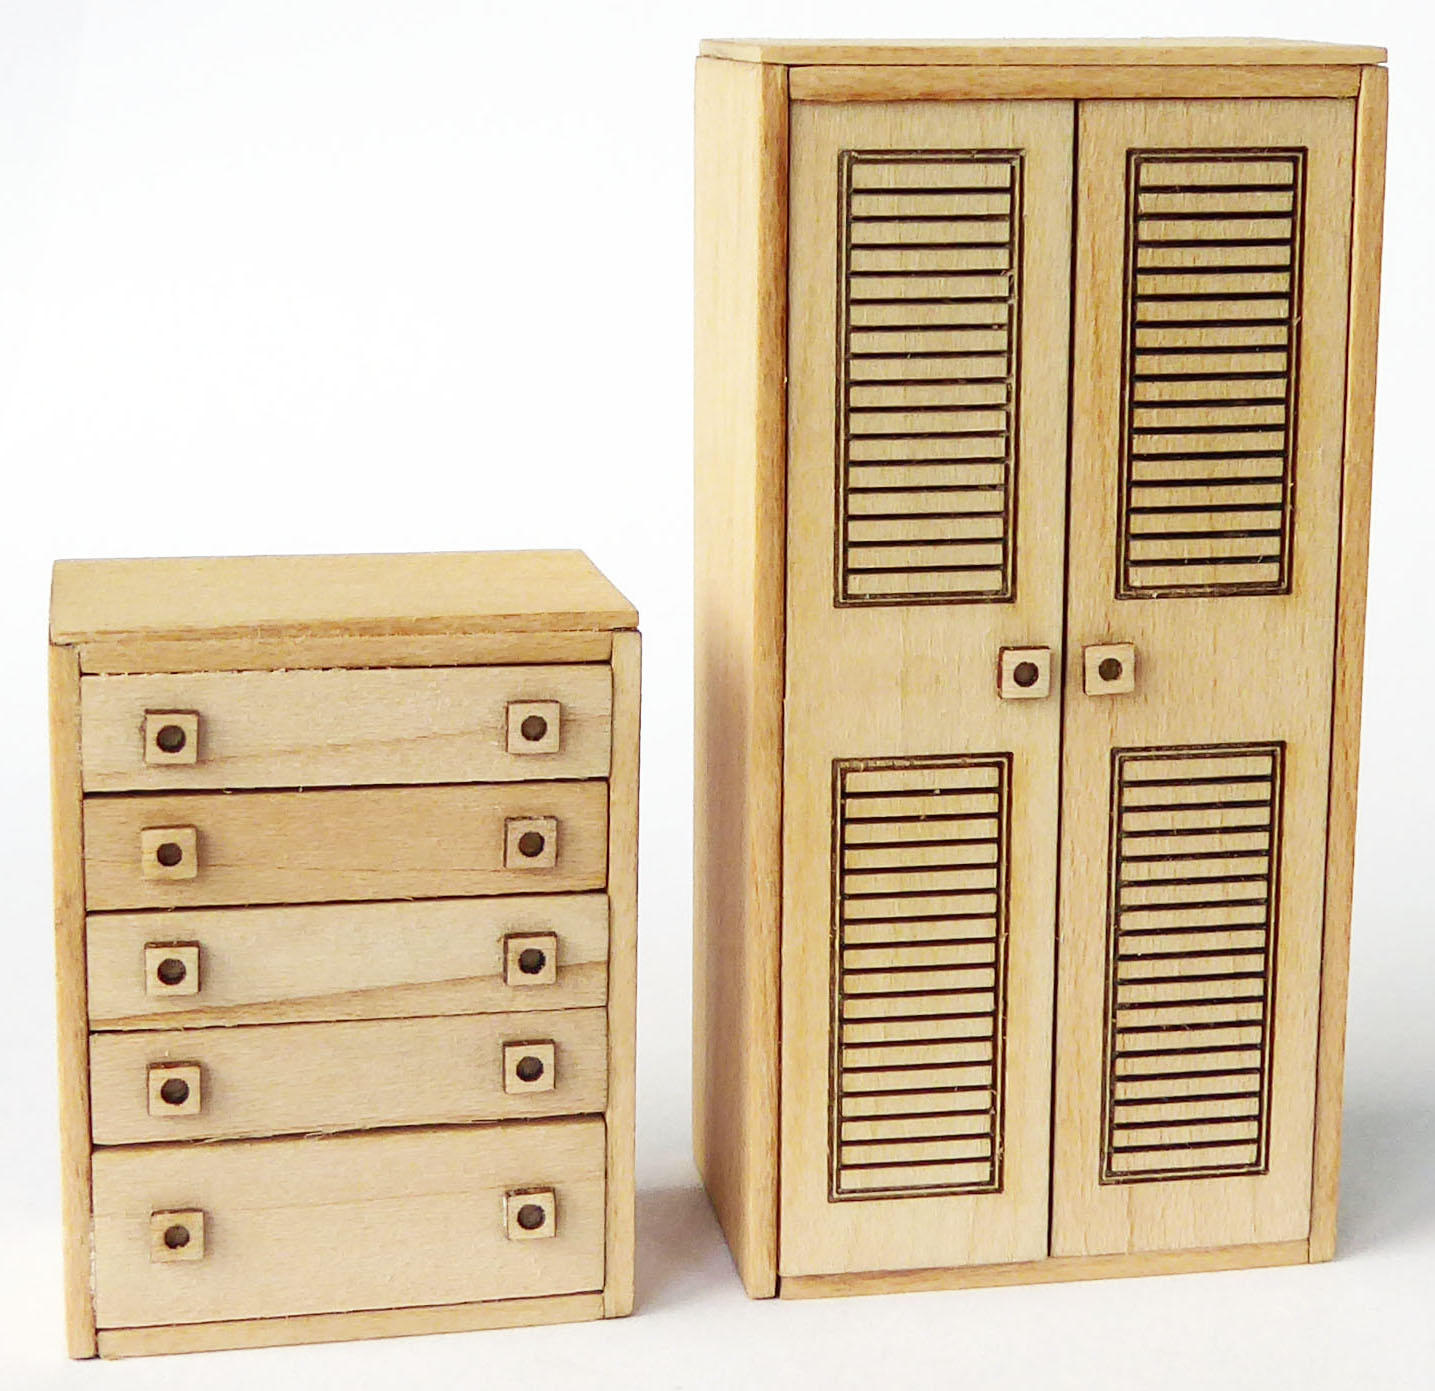 1/48th scale 70s Retro Wardrobe and Drawers Kit